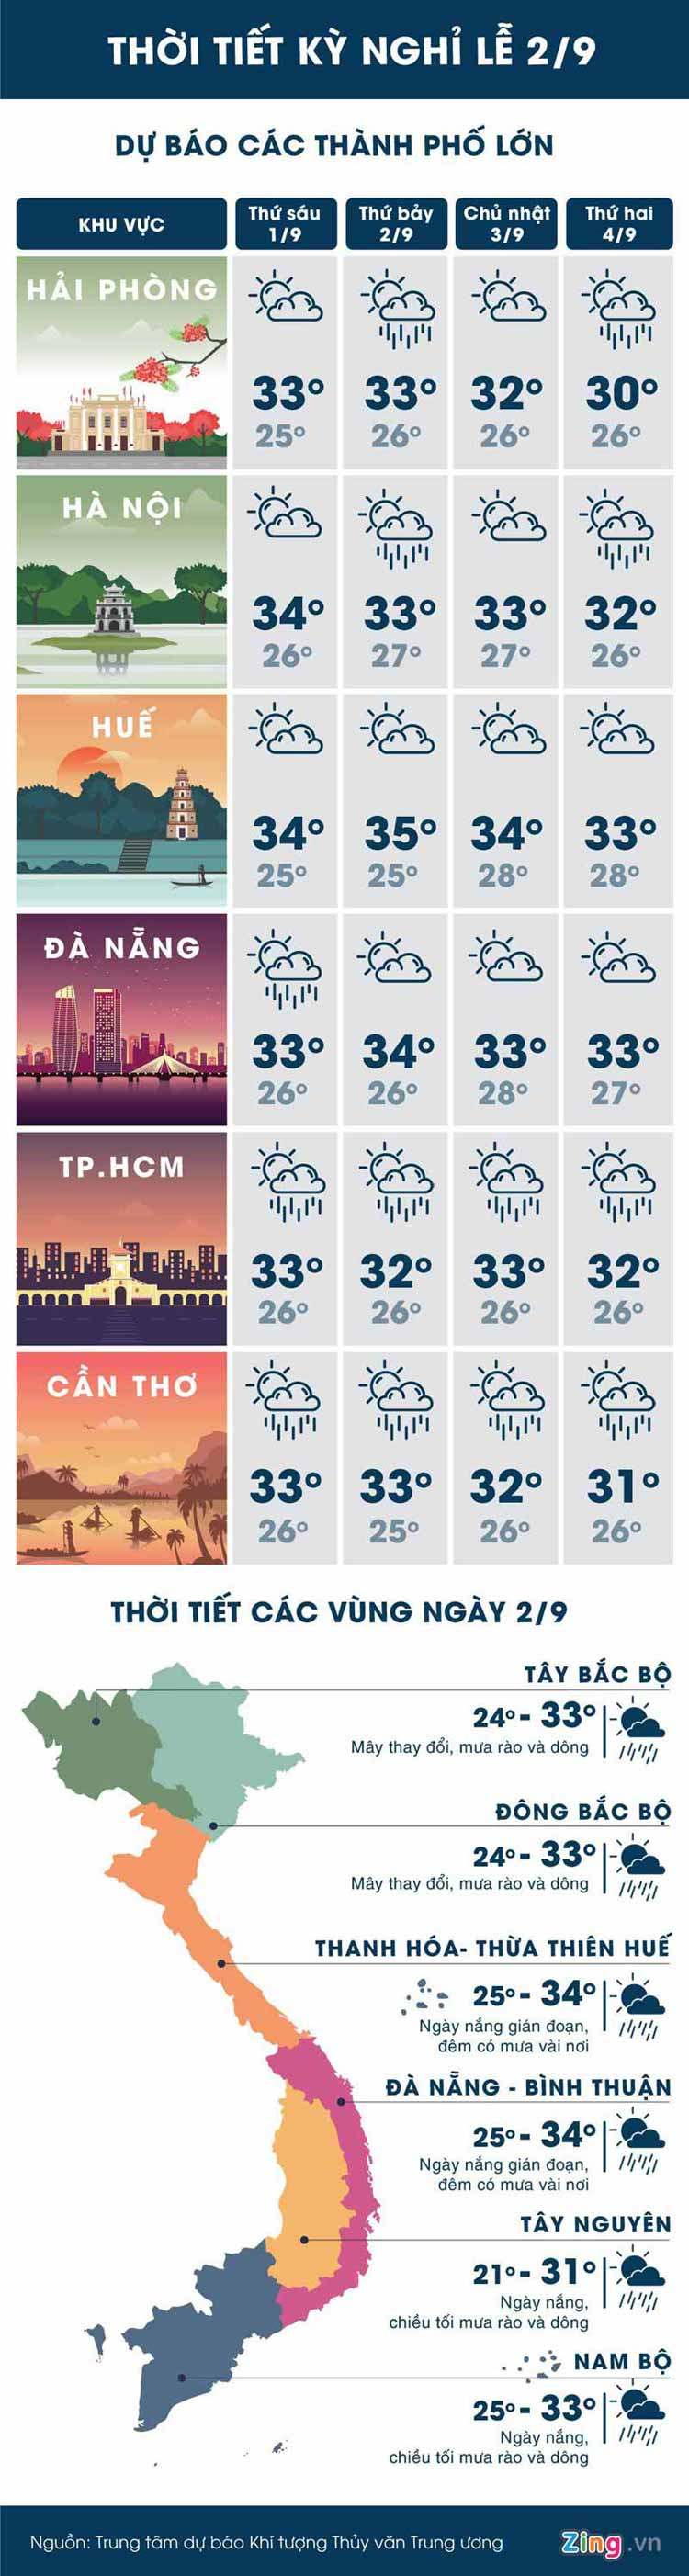 thoi tiet ca nuoc dip nghi le 2.9 nhu the nao? hinh anh 1